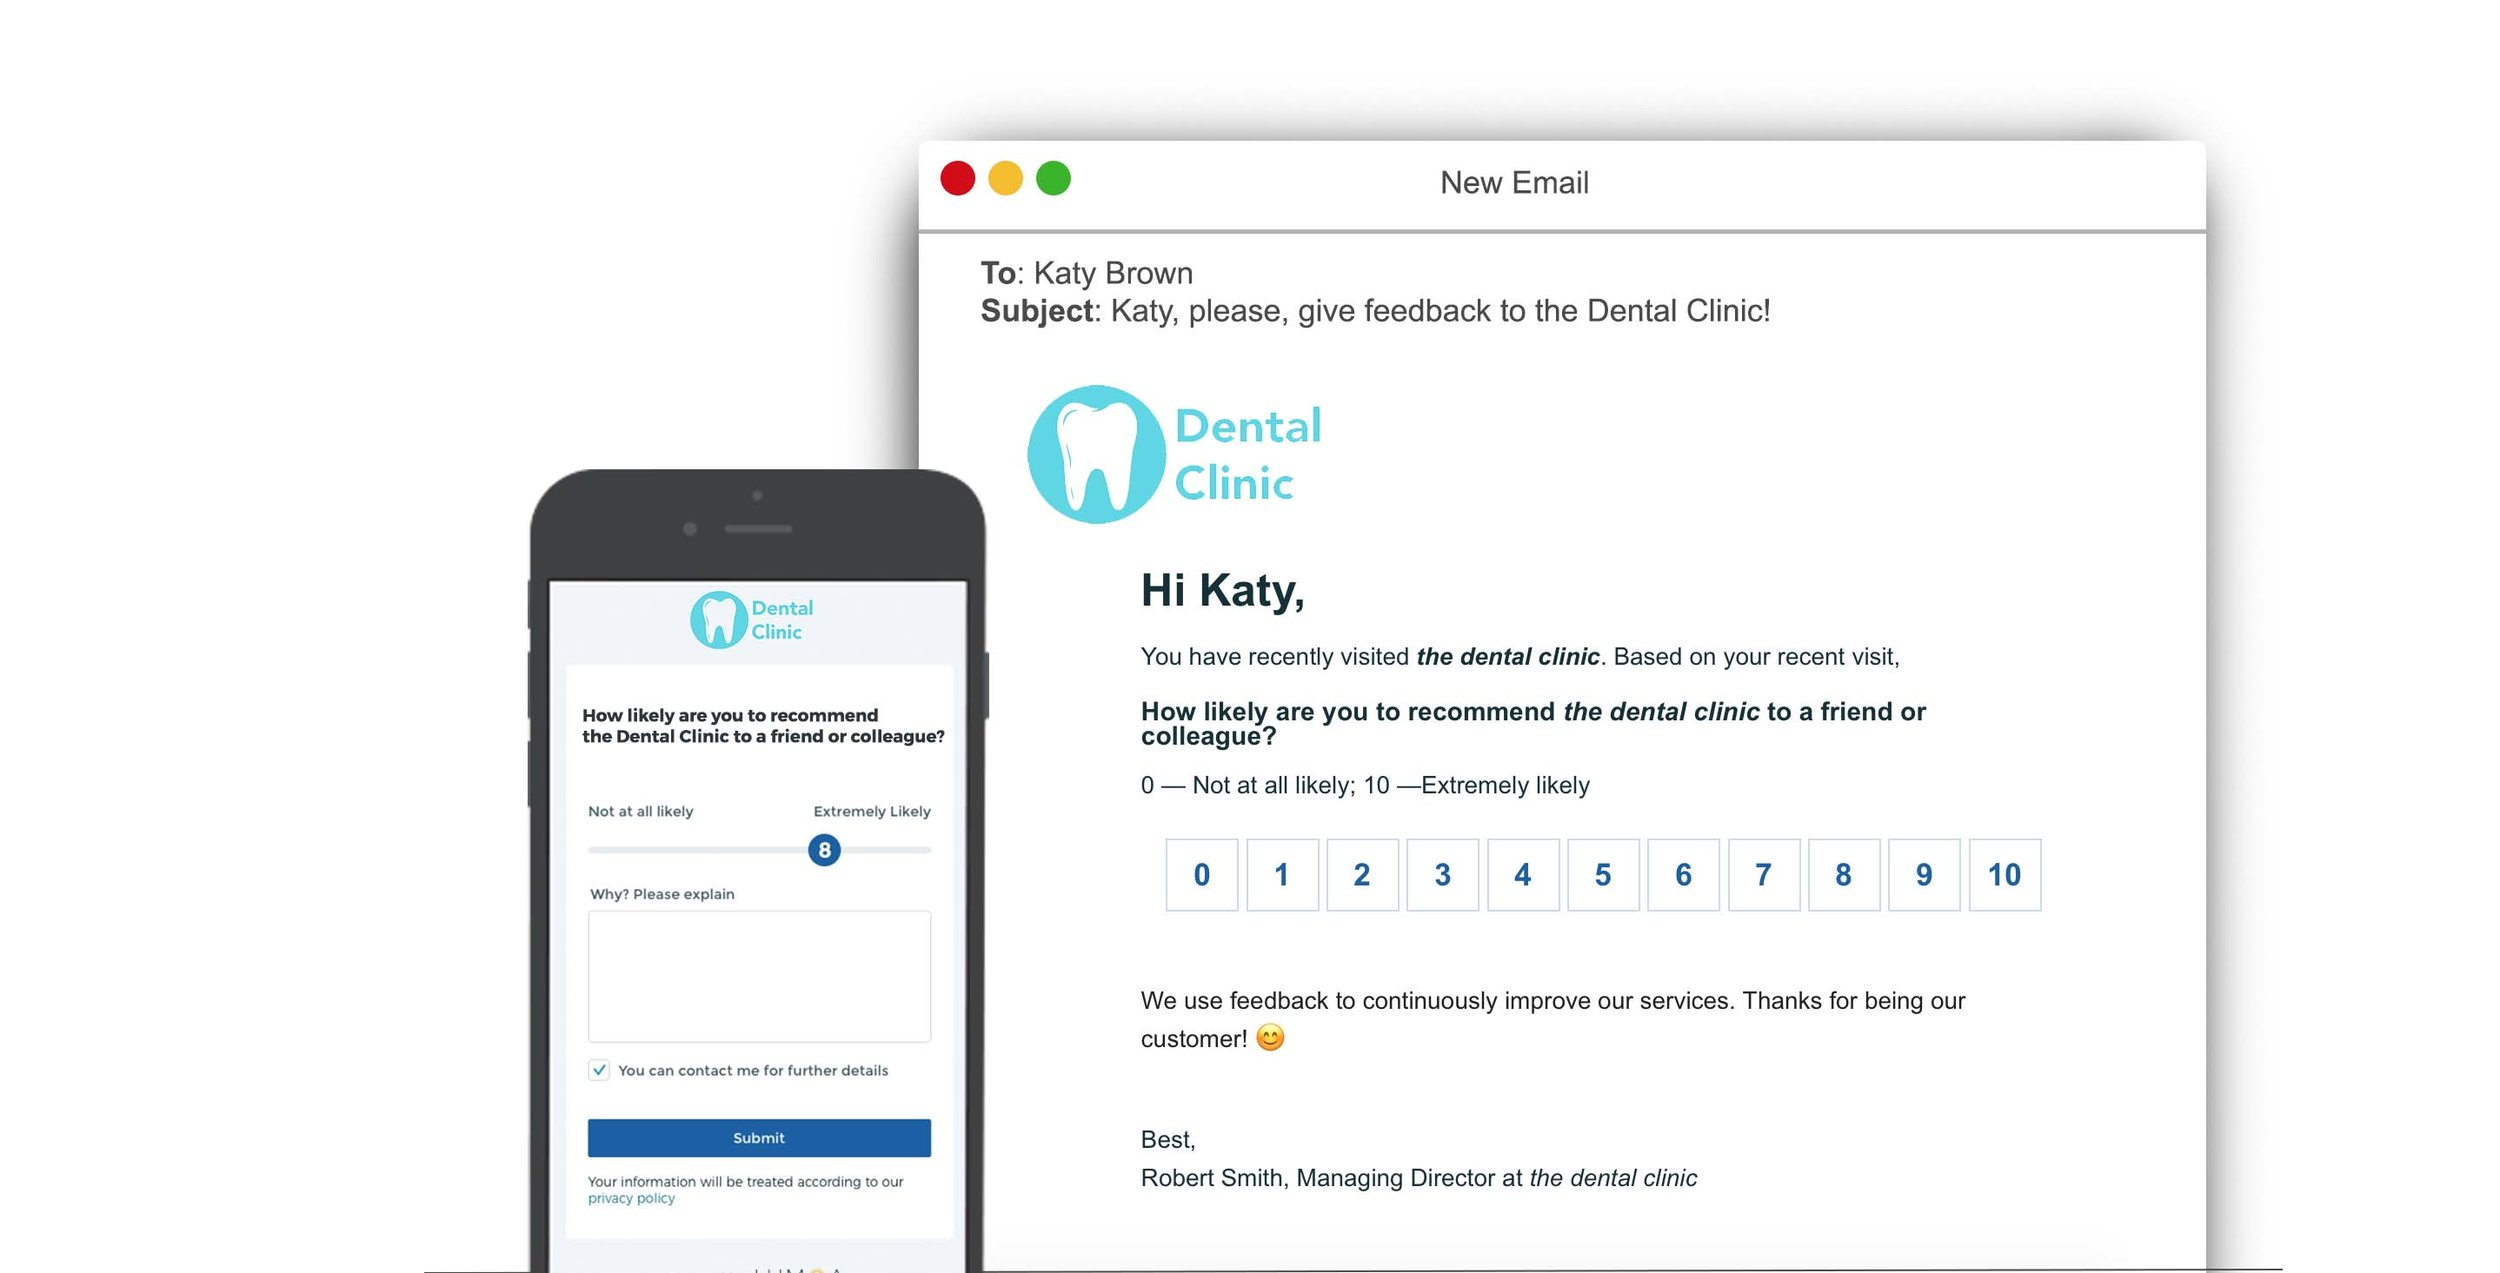 Find out what your customers think about the service of your dental clinic